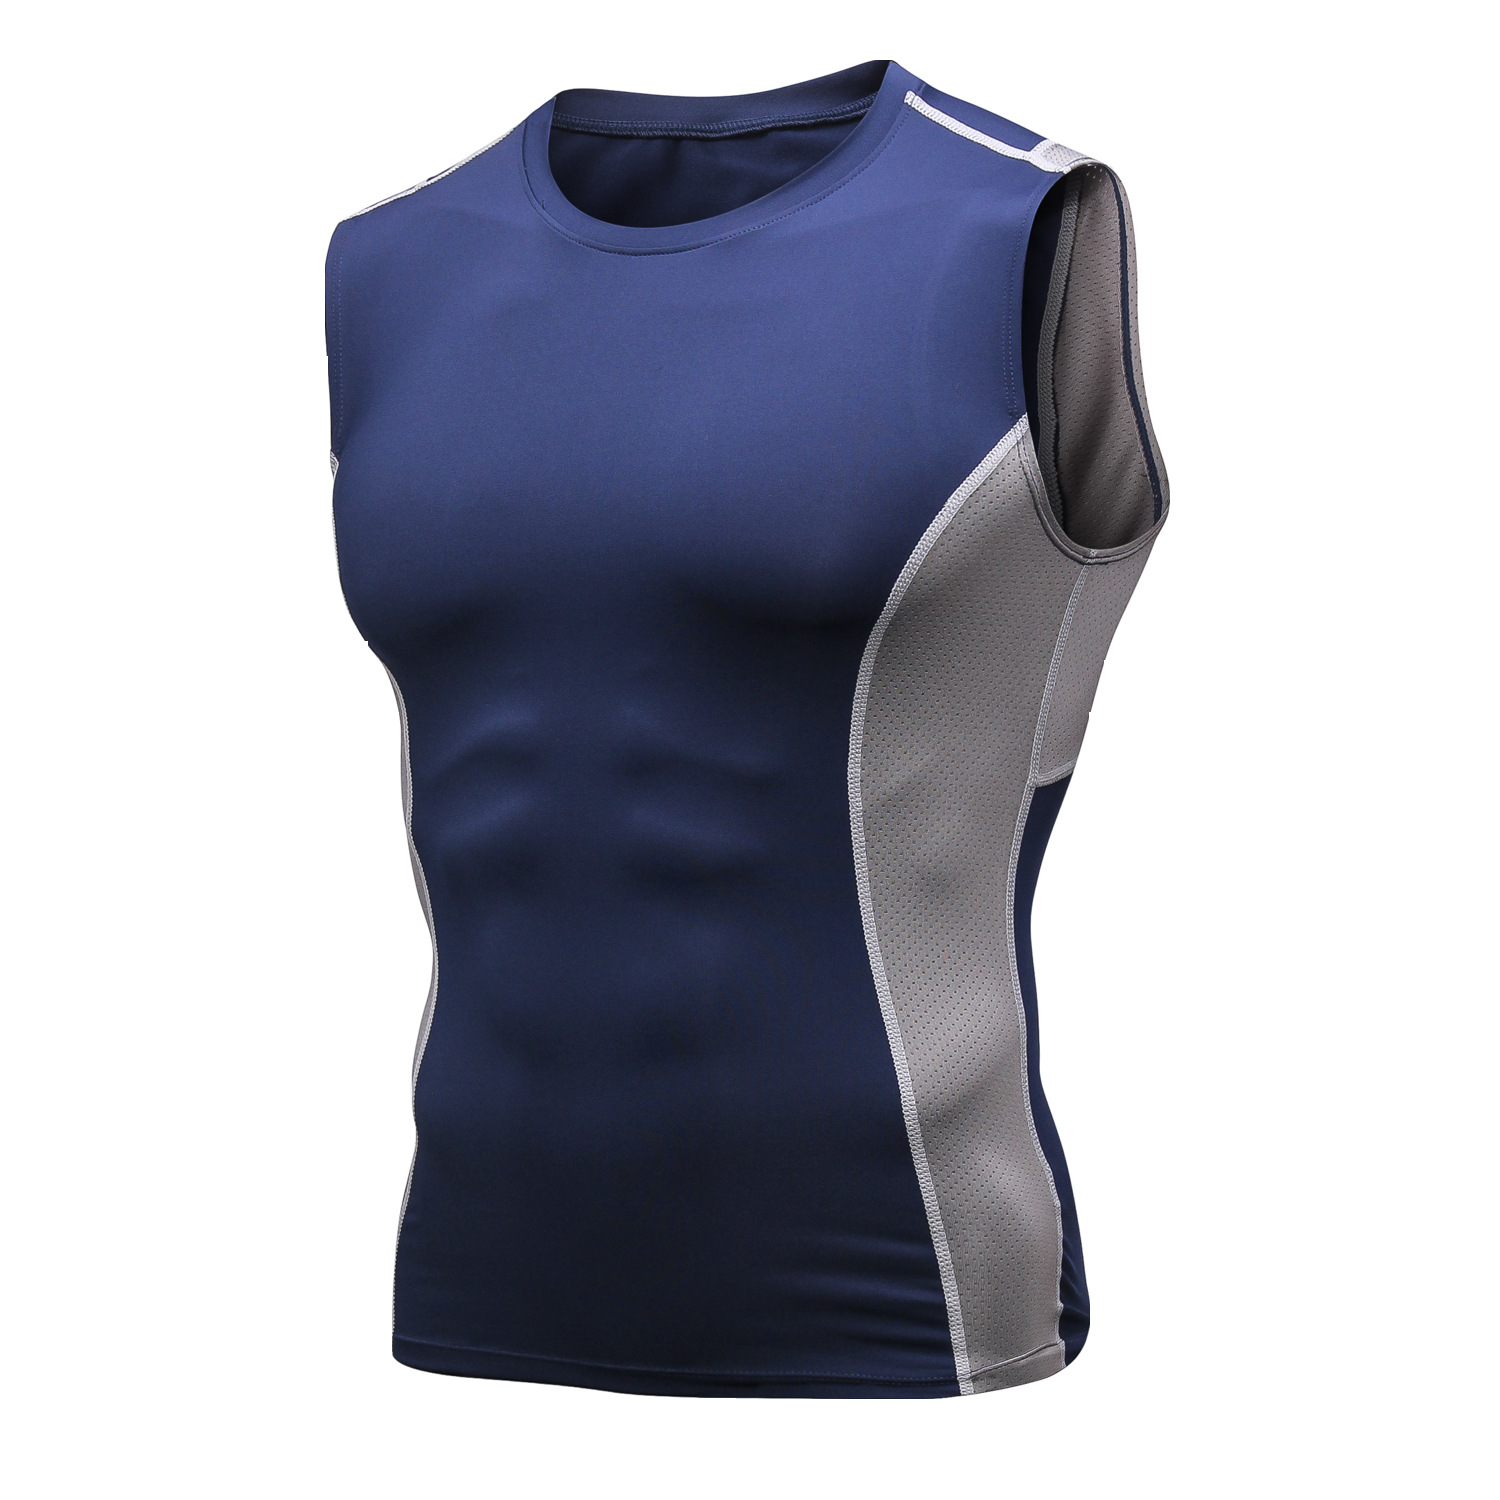 Womens Sports Tank Tops Racerback Yoga Baseball Gym Slimming Workout Vests Solid